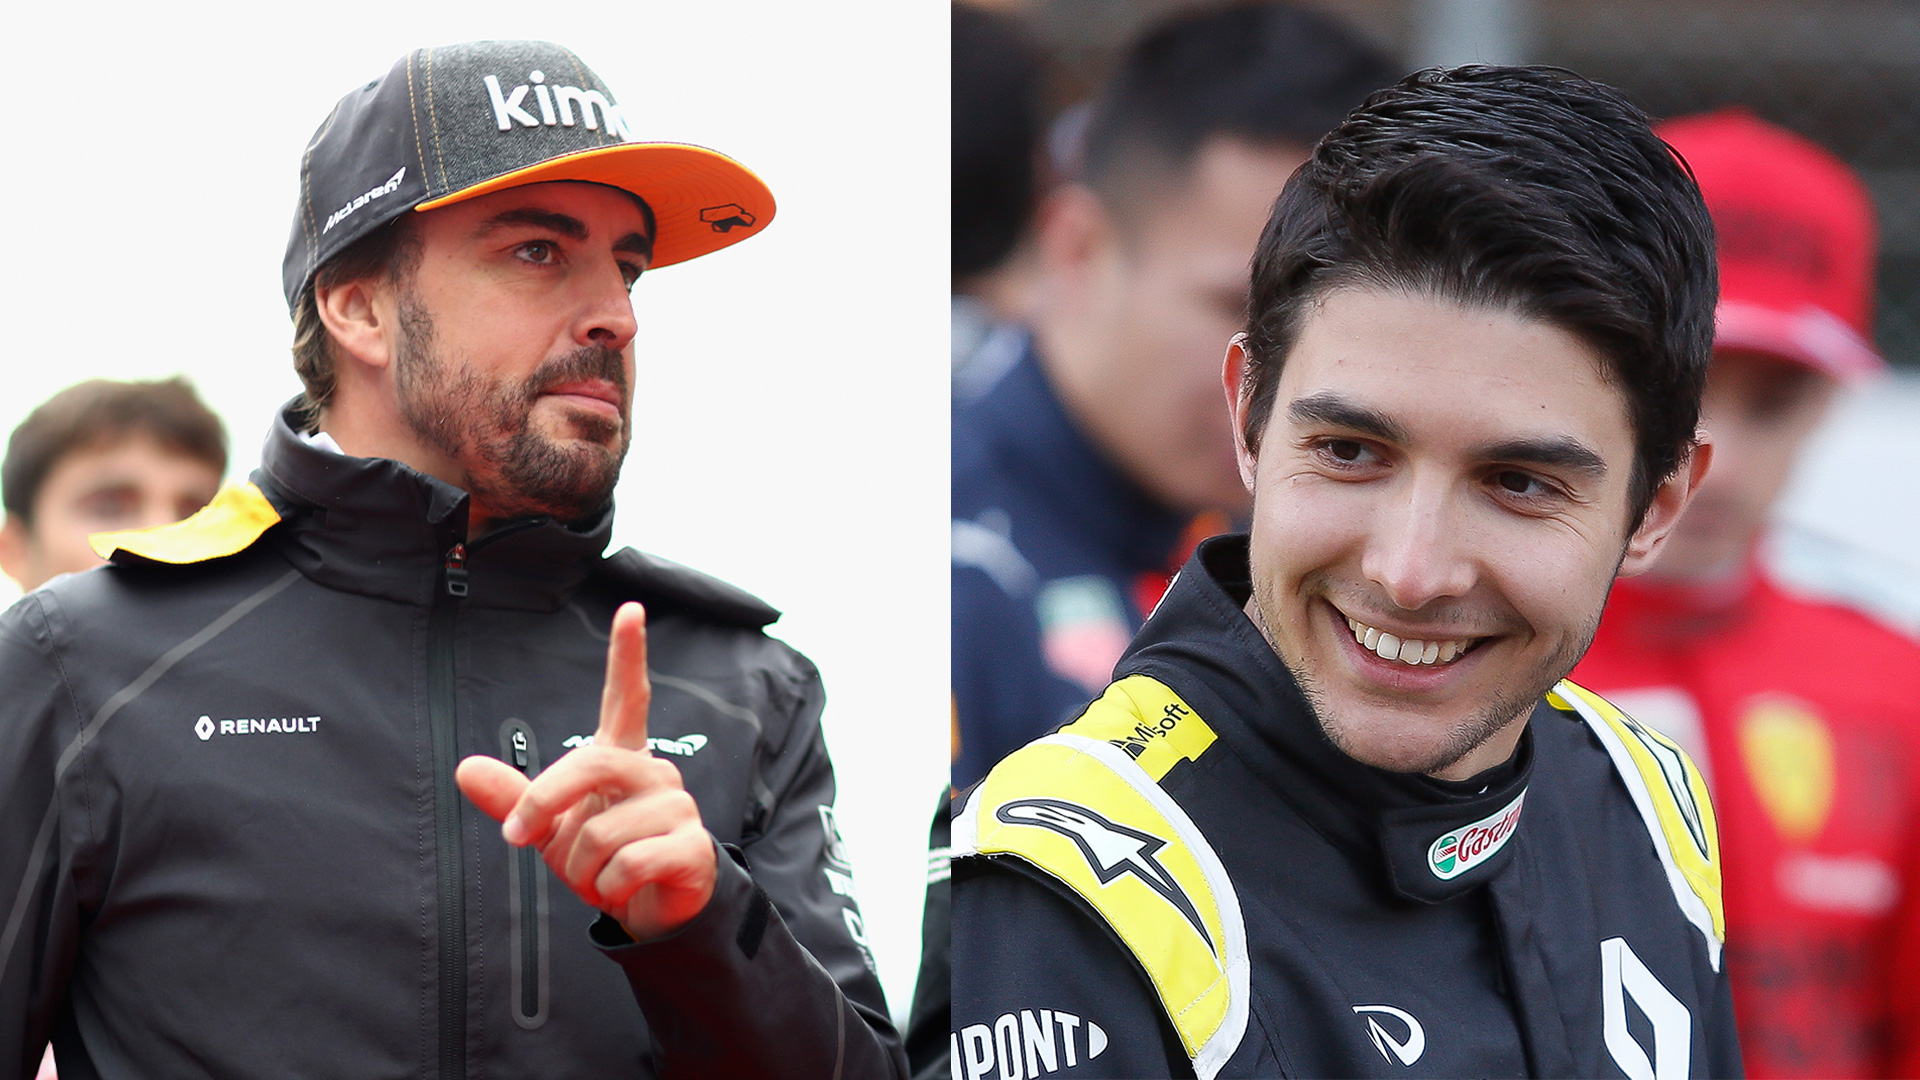 Esteban Ocon would be 'very happy' to have Fernando Alonso as Renault team  mate in 2021 | Formula 1®